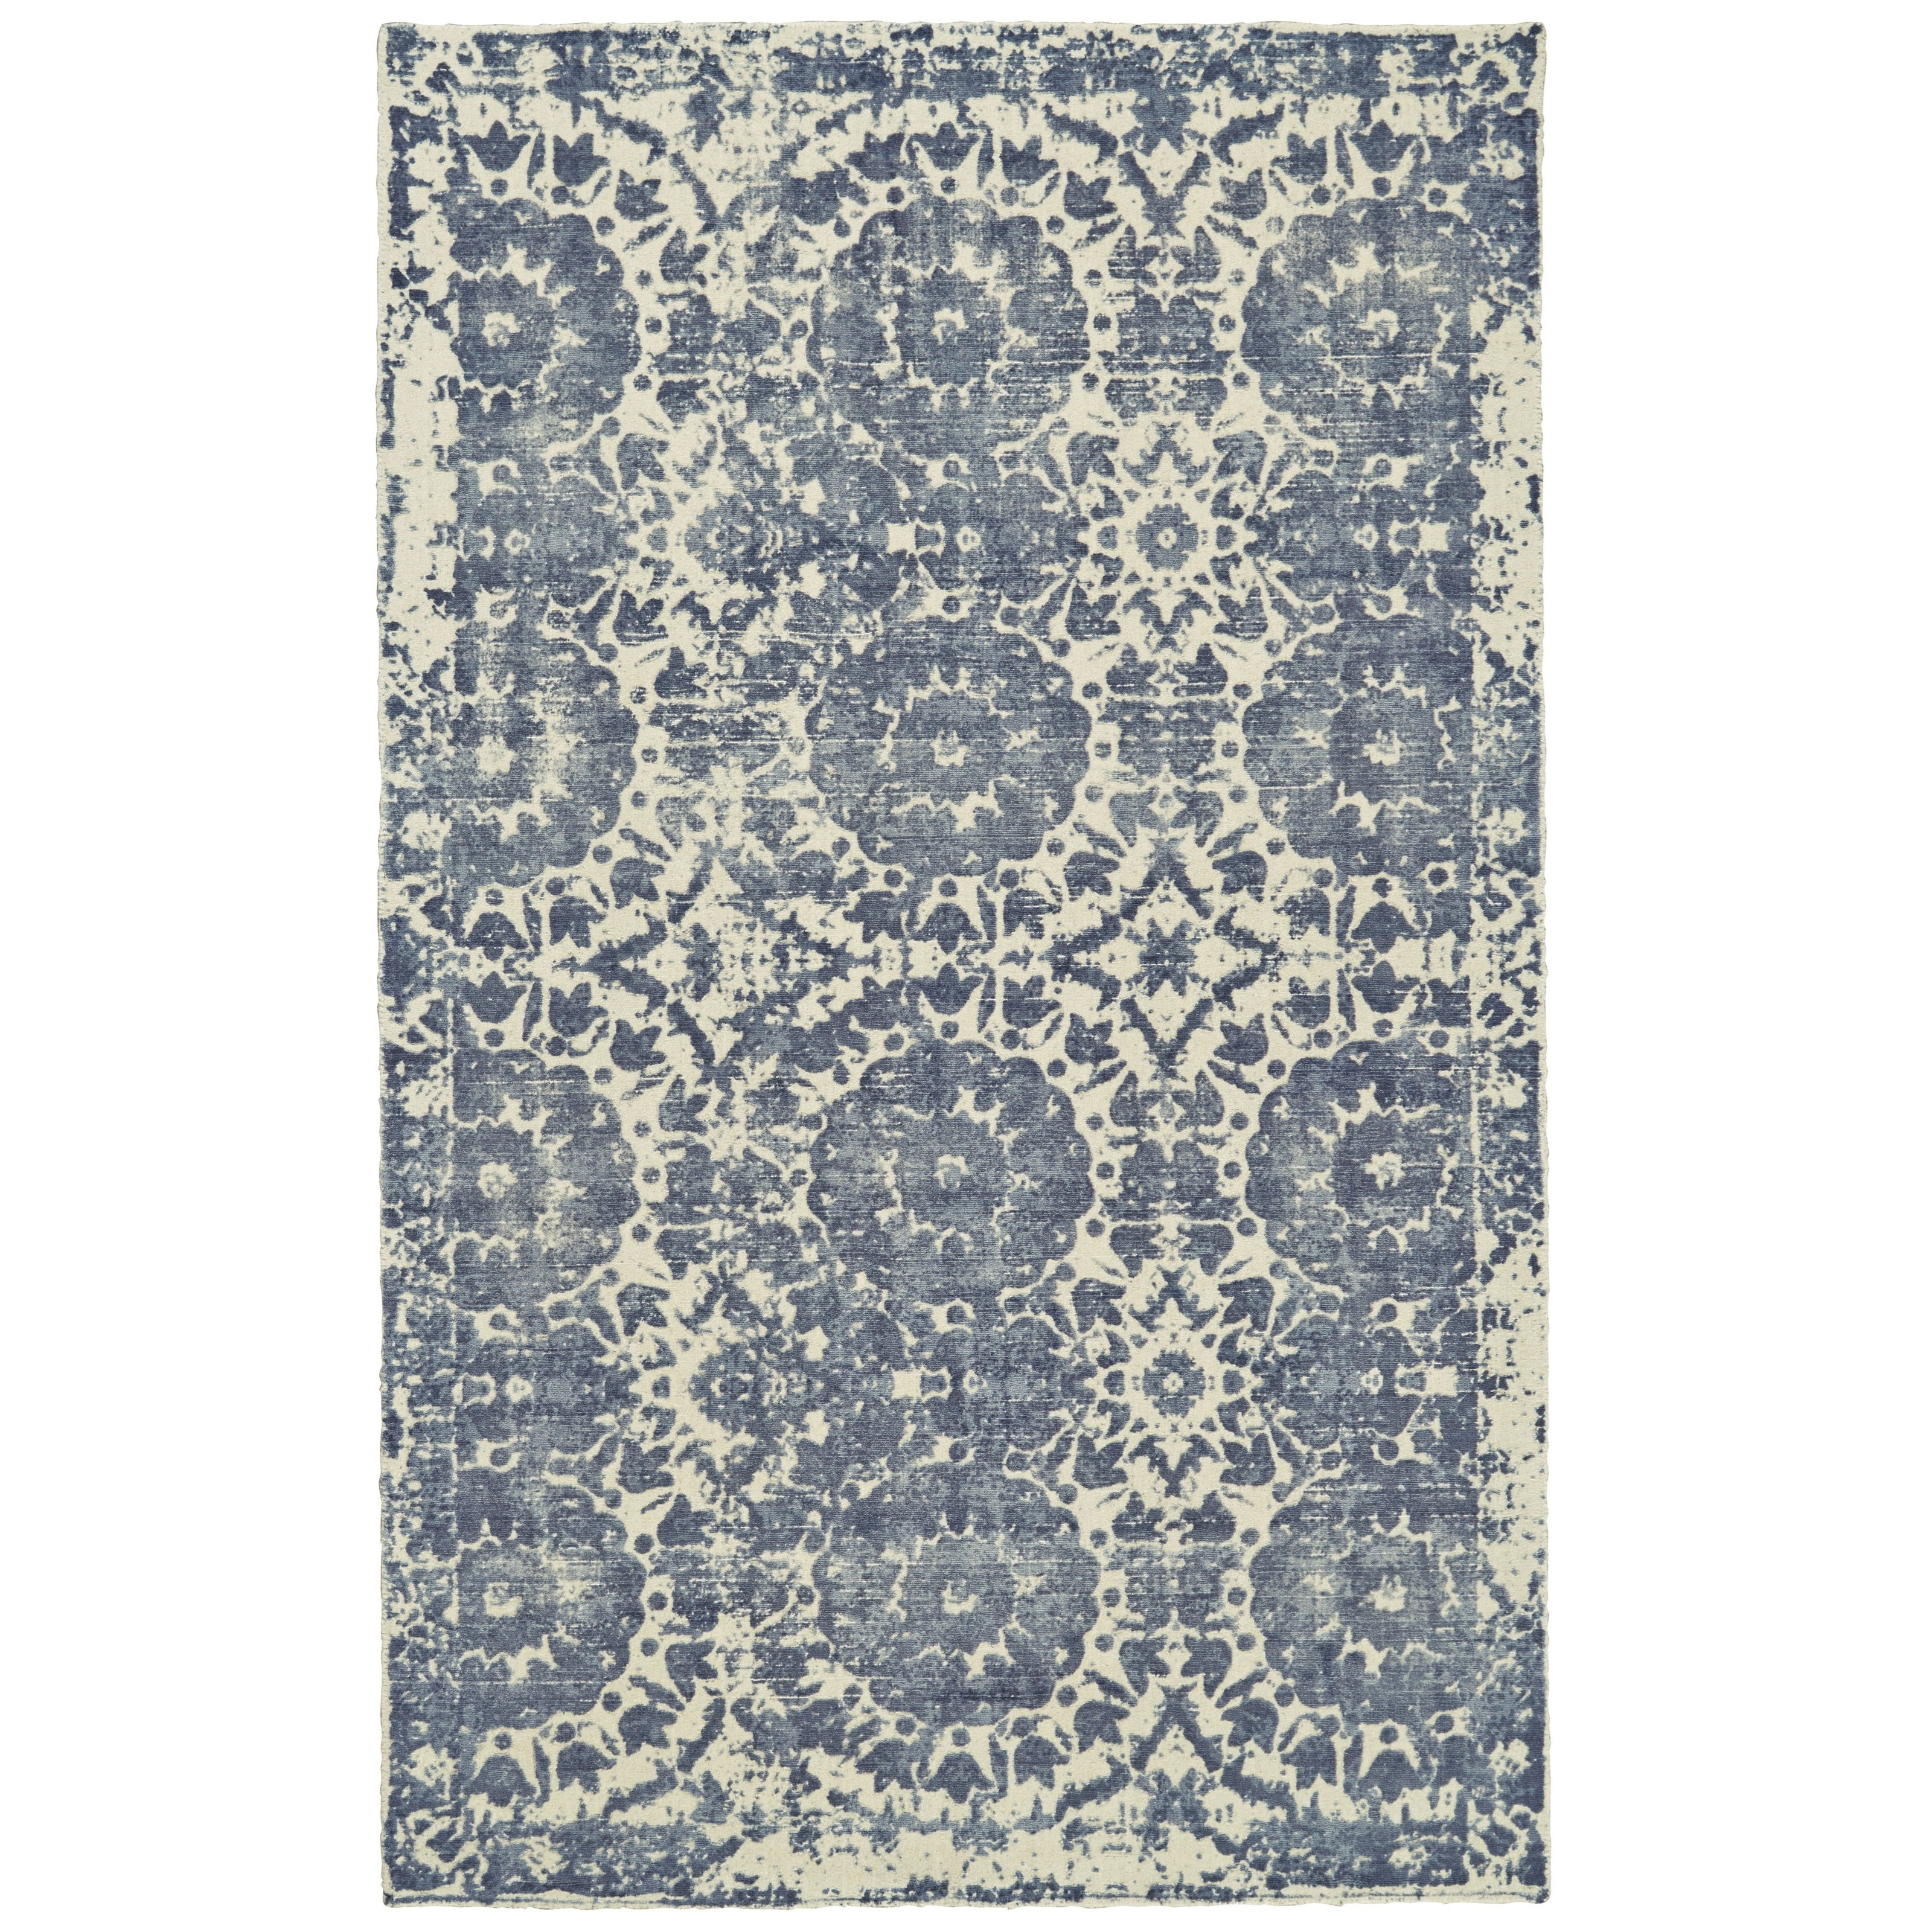 """Dylan Winter 9'-6"""" x 13'-6"""" Area Rug by Feizy Rugs at Sprintz Furniture"""